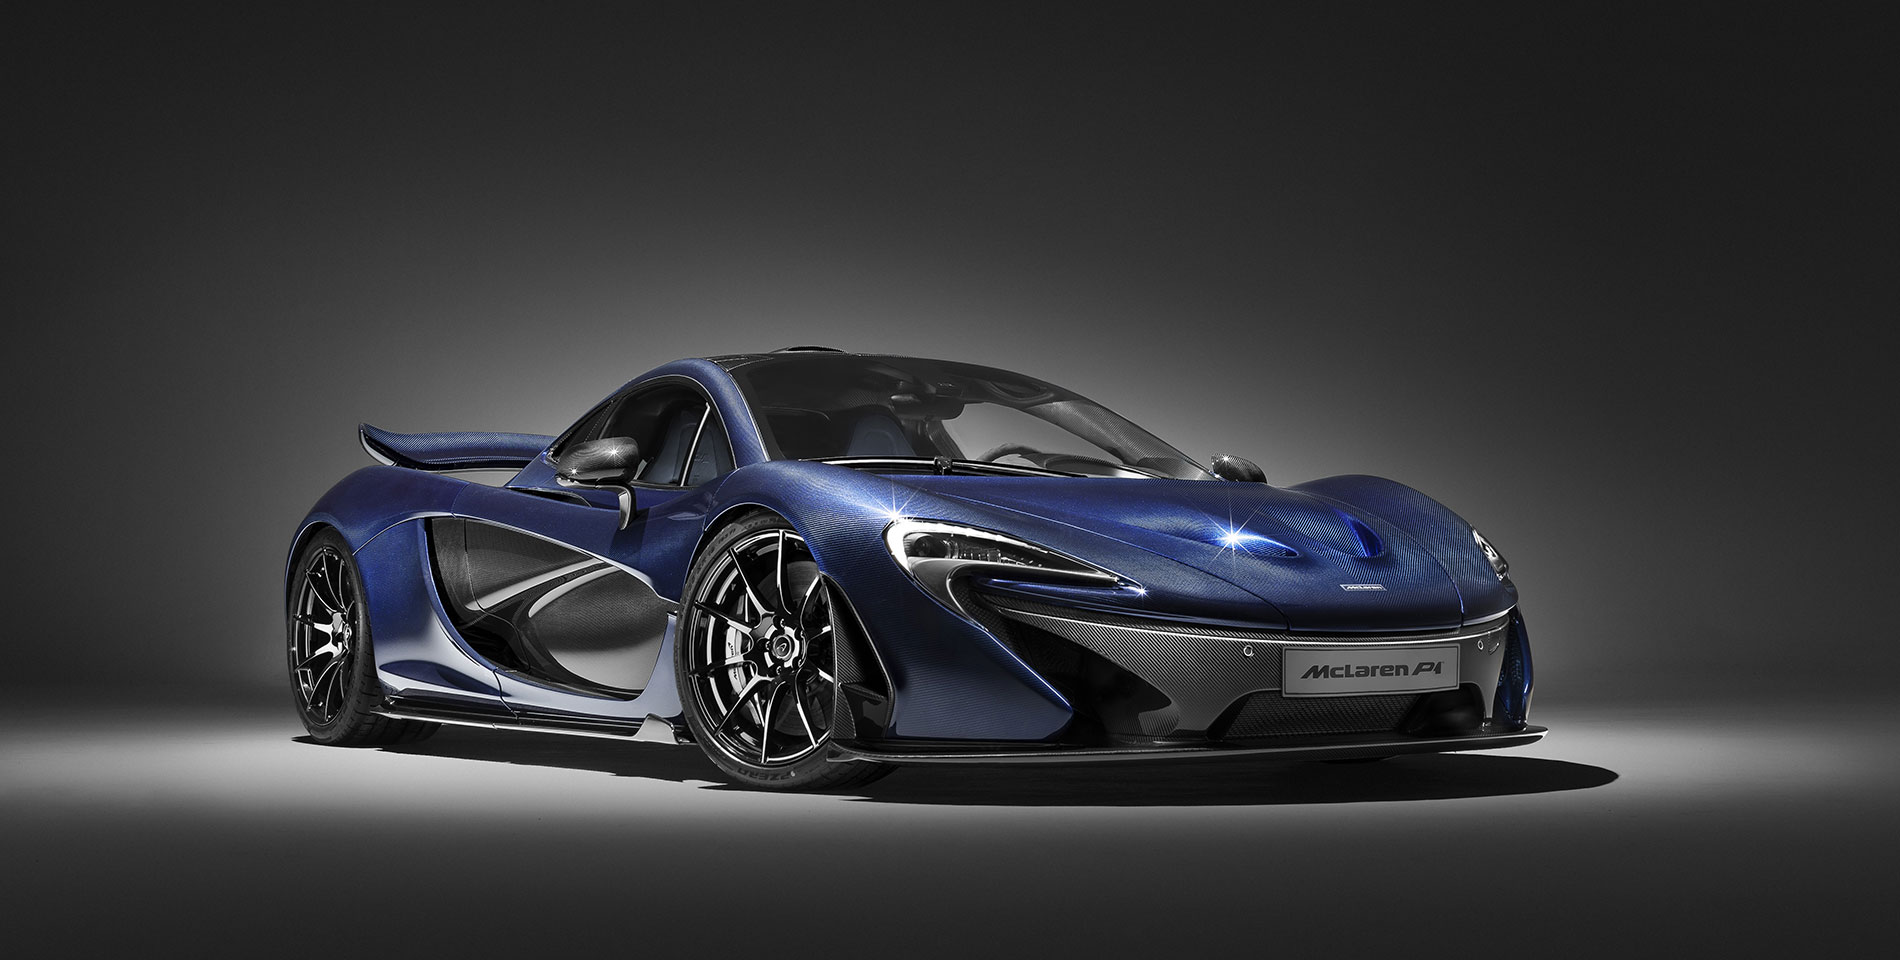 McLaren P1 Vehicle